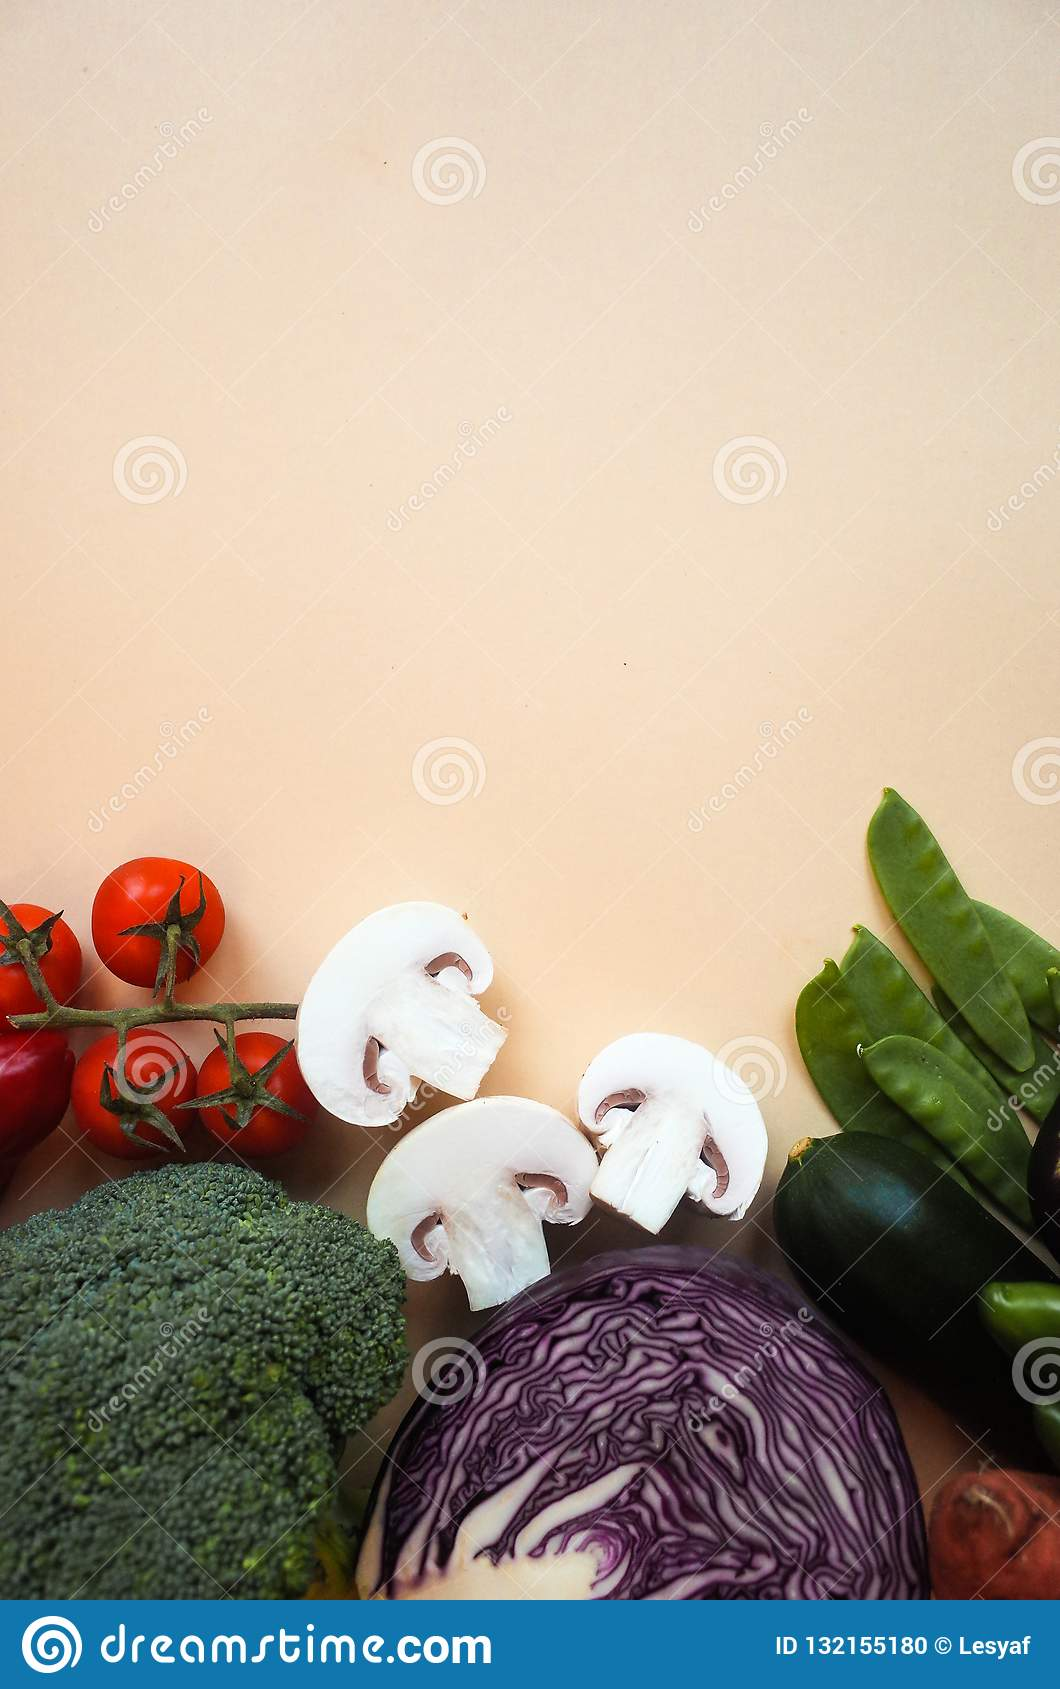 Healthy eating background. Food photography different vegetables color background. Copy space